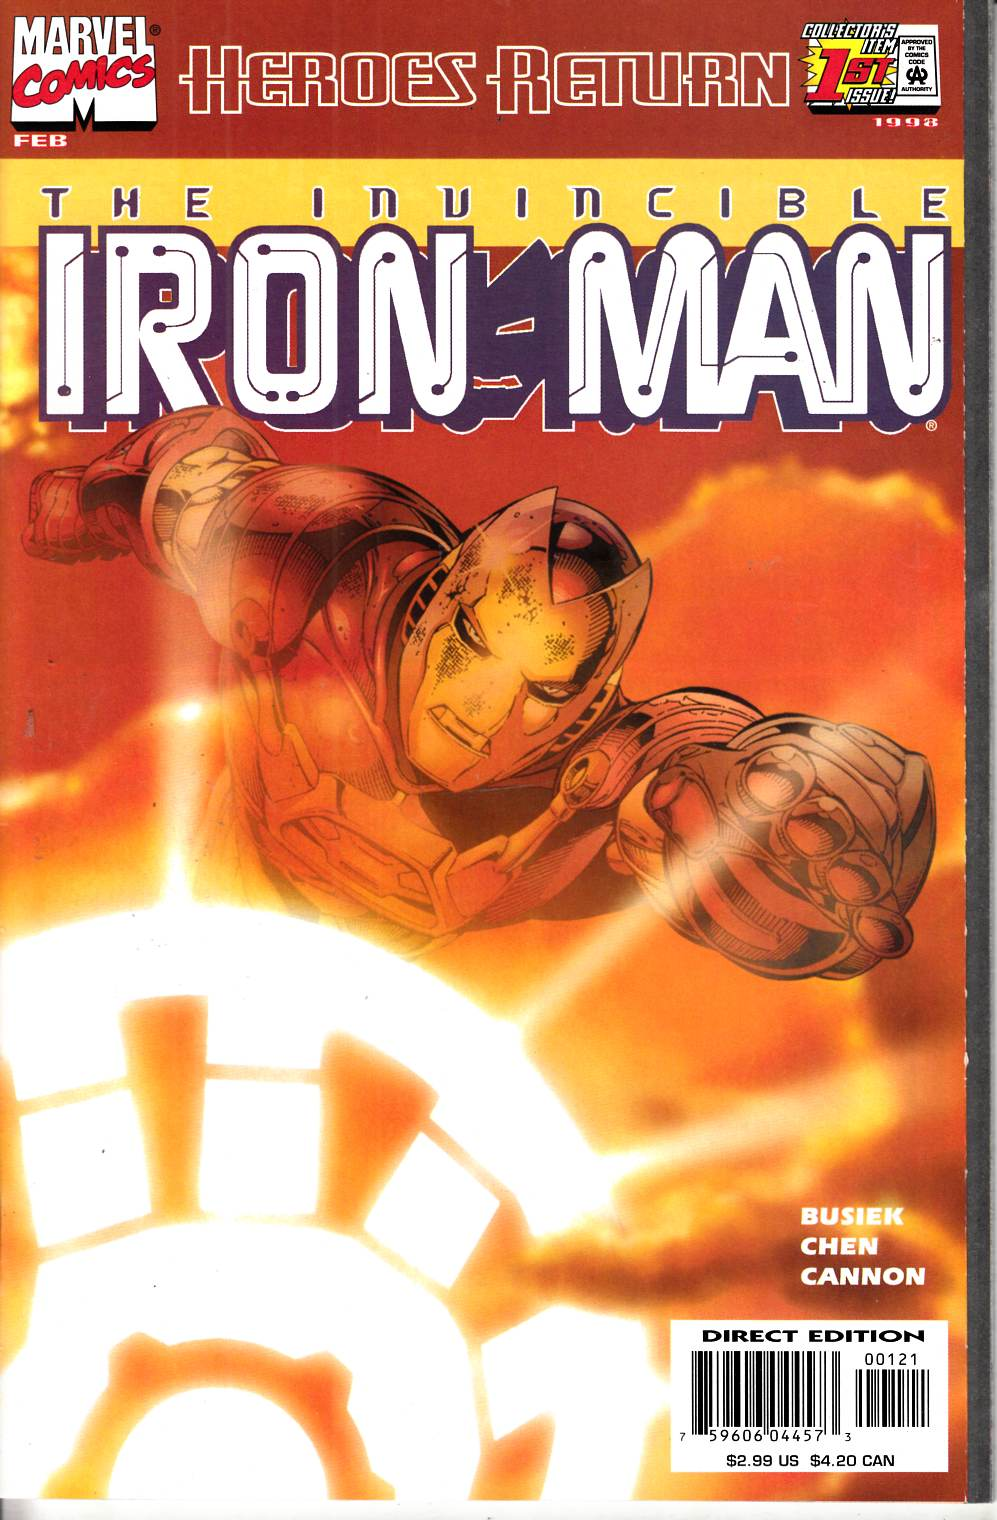 Iron Man #1 Sunburst Variant Cover Very Fine (8.0) [Marvel Comic] THUMBNAIL